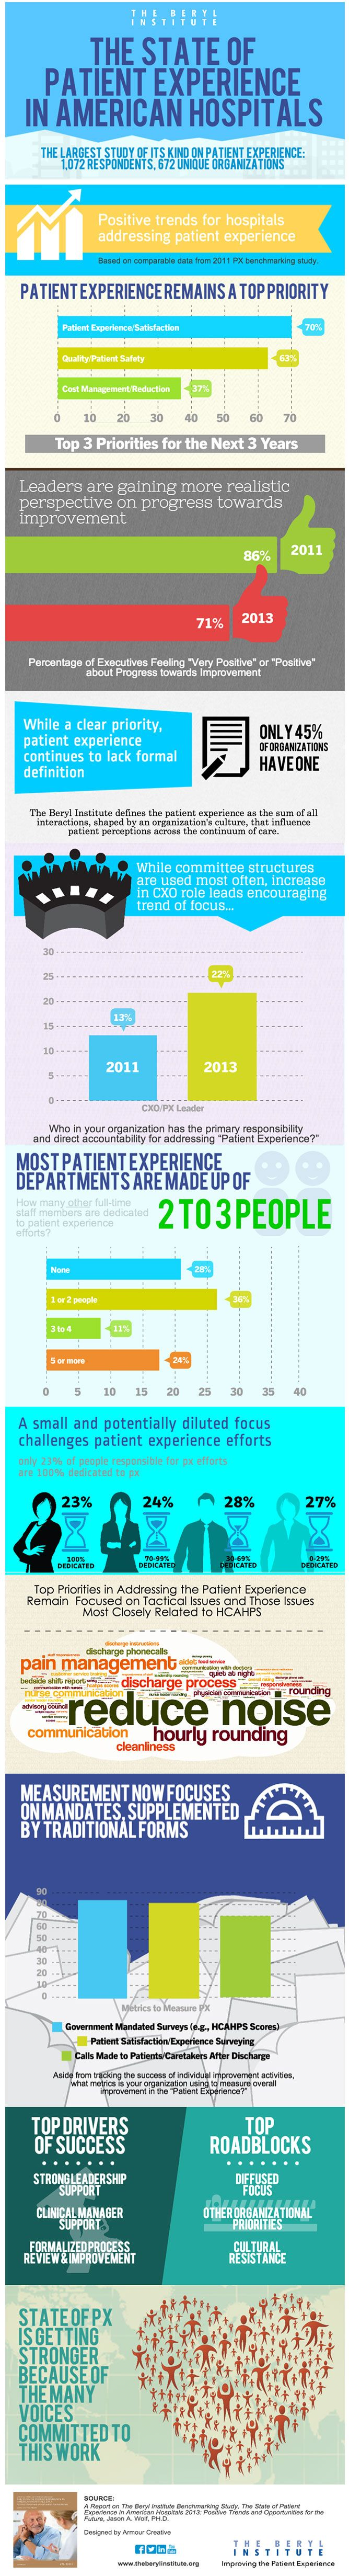 The State of patient experience in American hospitals